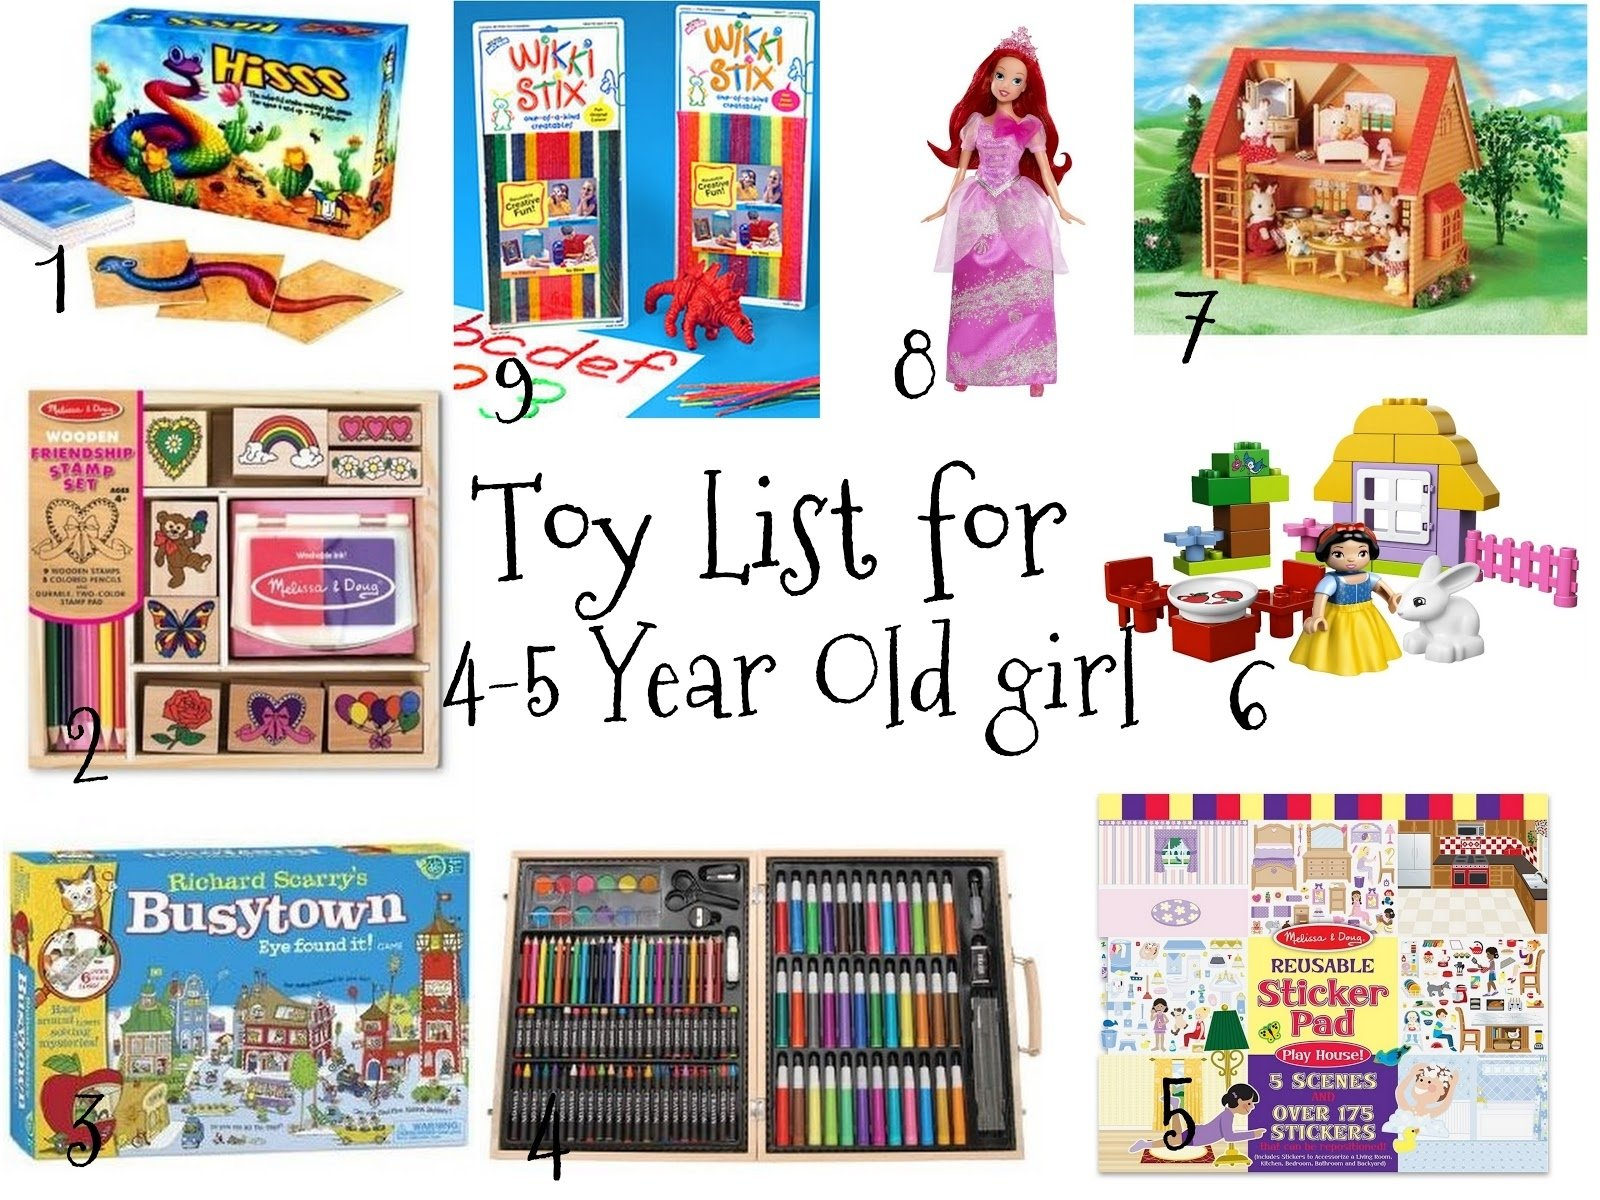 10 Lovable 5 Yr Old Girl Birthday Gift Ideas favorites and things christmas toy list for 4 5 year old girls 8 2021